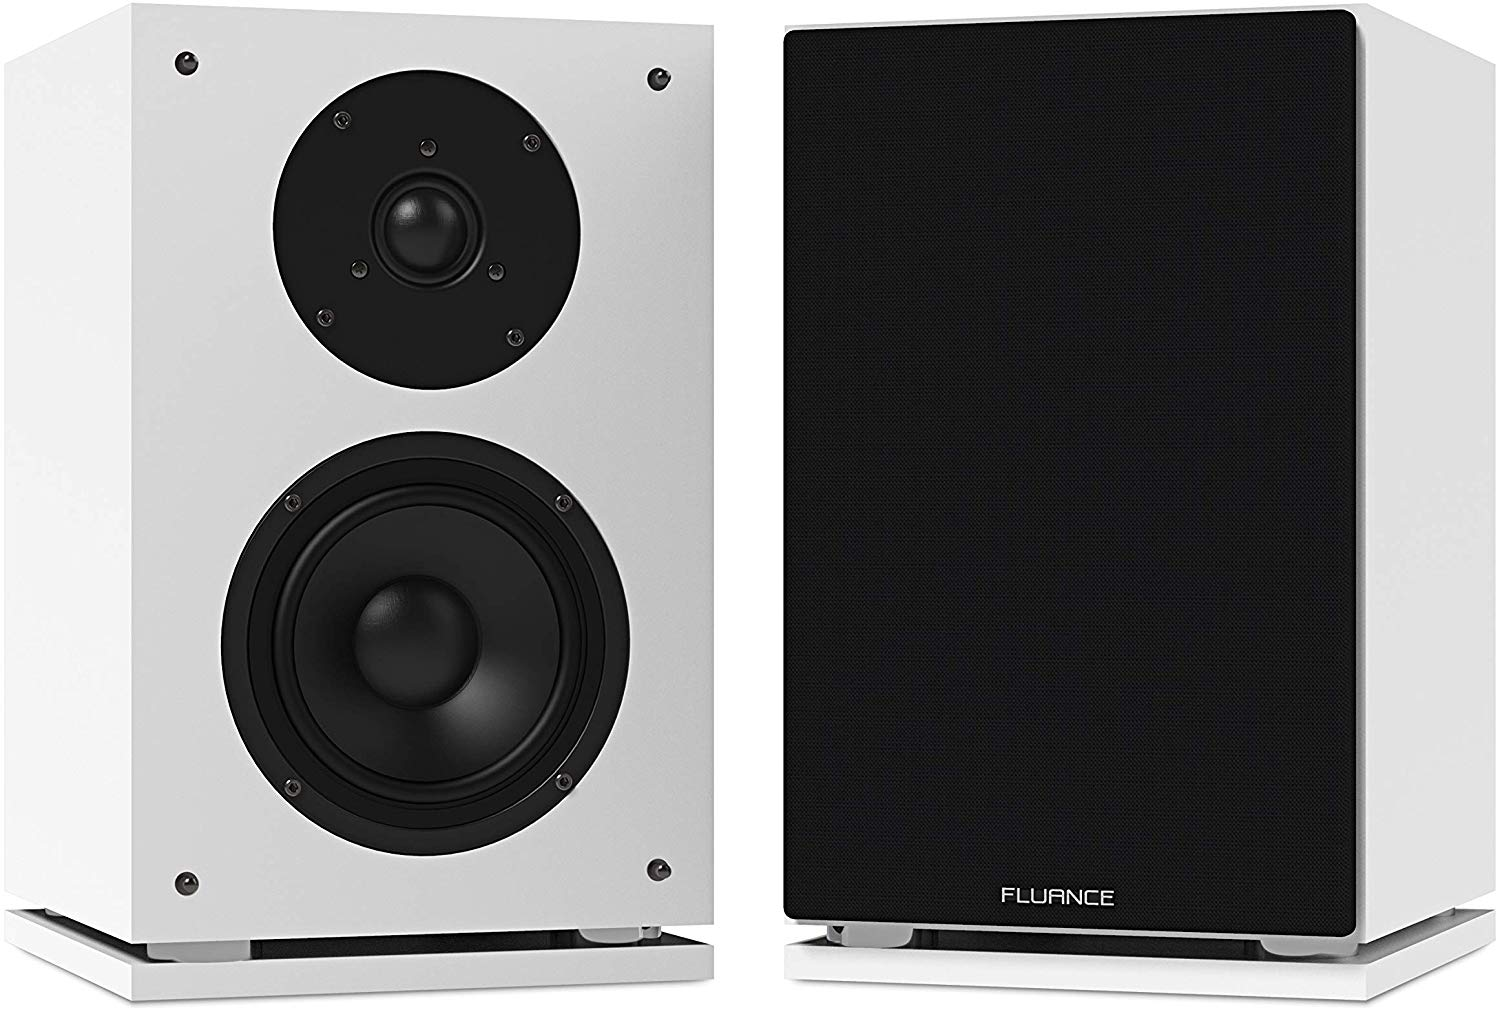 best cheap bookshelf speakers on the market - Fluance SX6WH High Definition Two-Way Bookshelf Loudspeakers